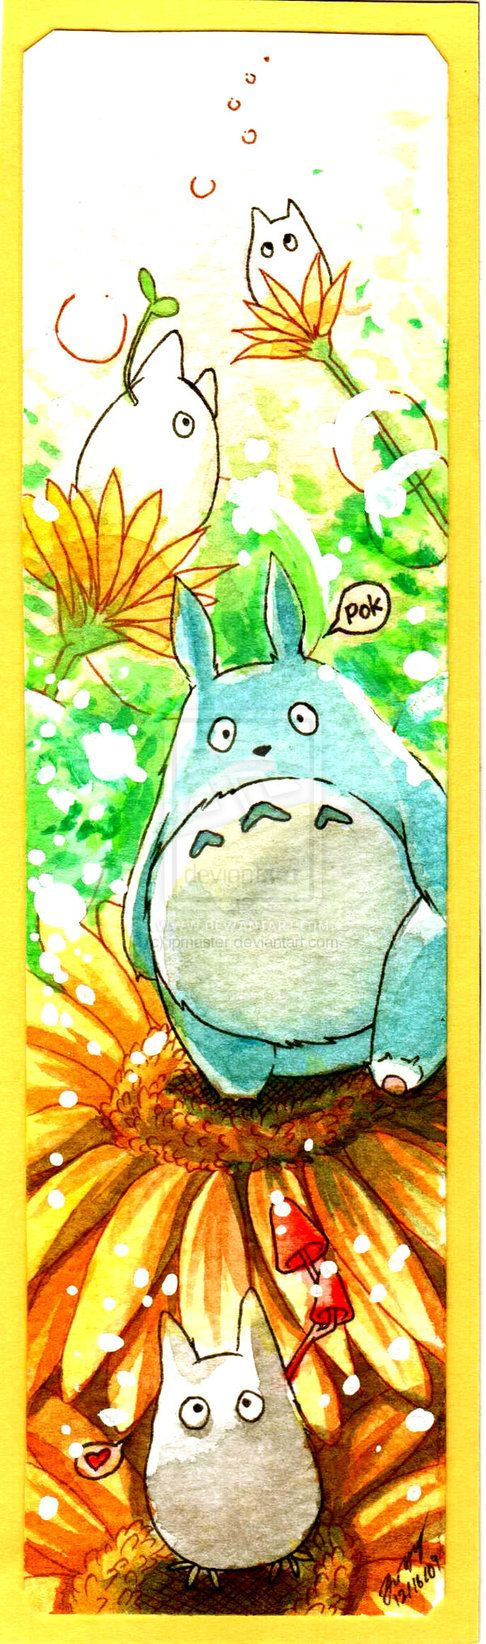 Totoro!Geeky, Totoro Nurseries, Animal Animal Cartoons, Glasses, Totoro Inside, Japan Bookmarks, Totoro Bookmarks, Neighbor Totoro, Studios Ghibli